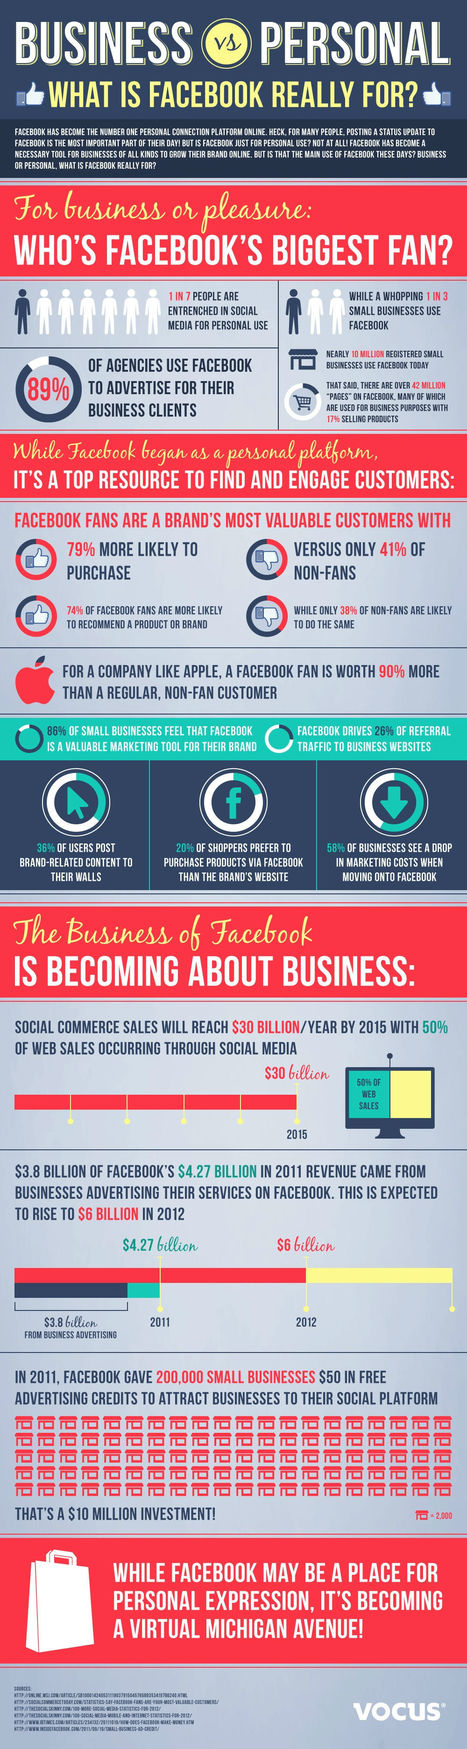 Why Sales on Social Media Will Be Huge By 2015 [INFOGRAPHIC] | Social Mercor | Scoop.it